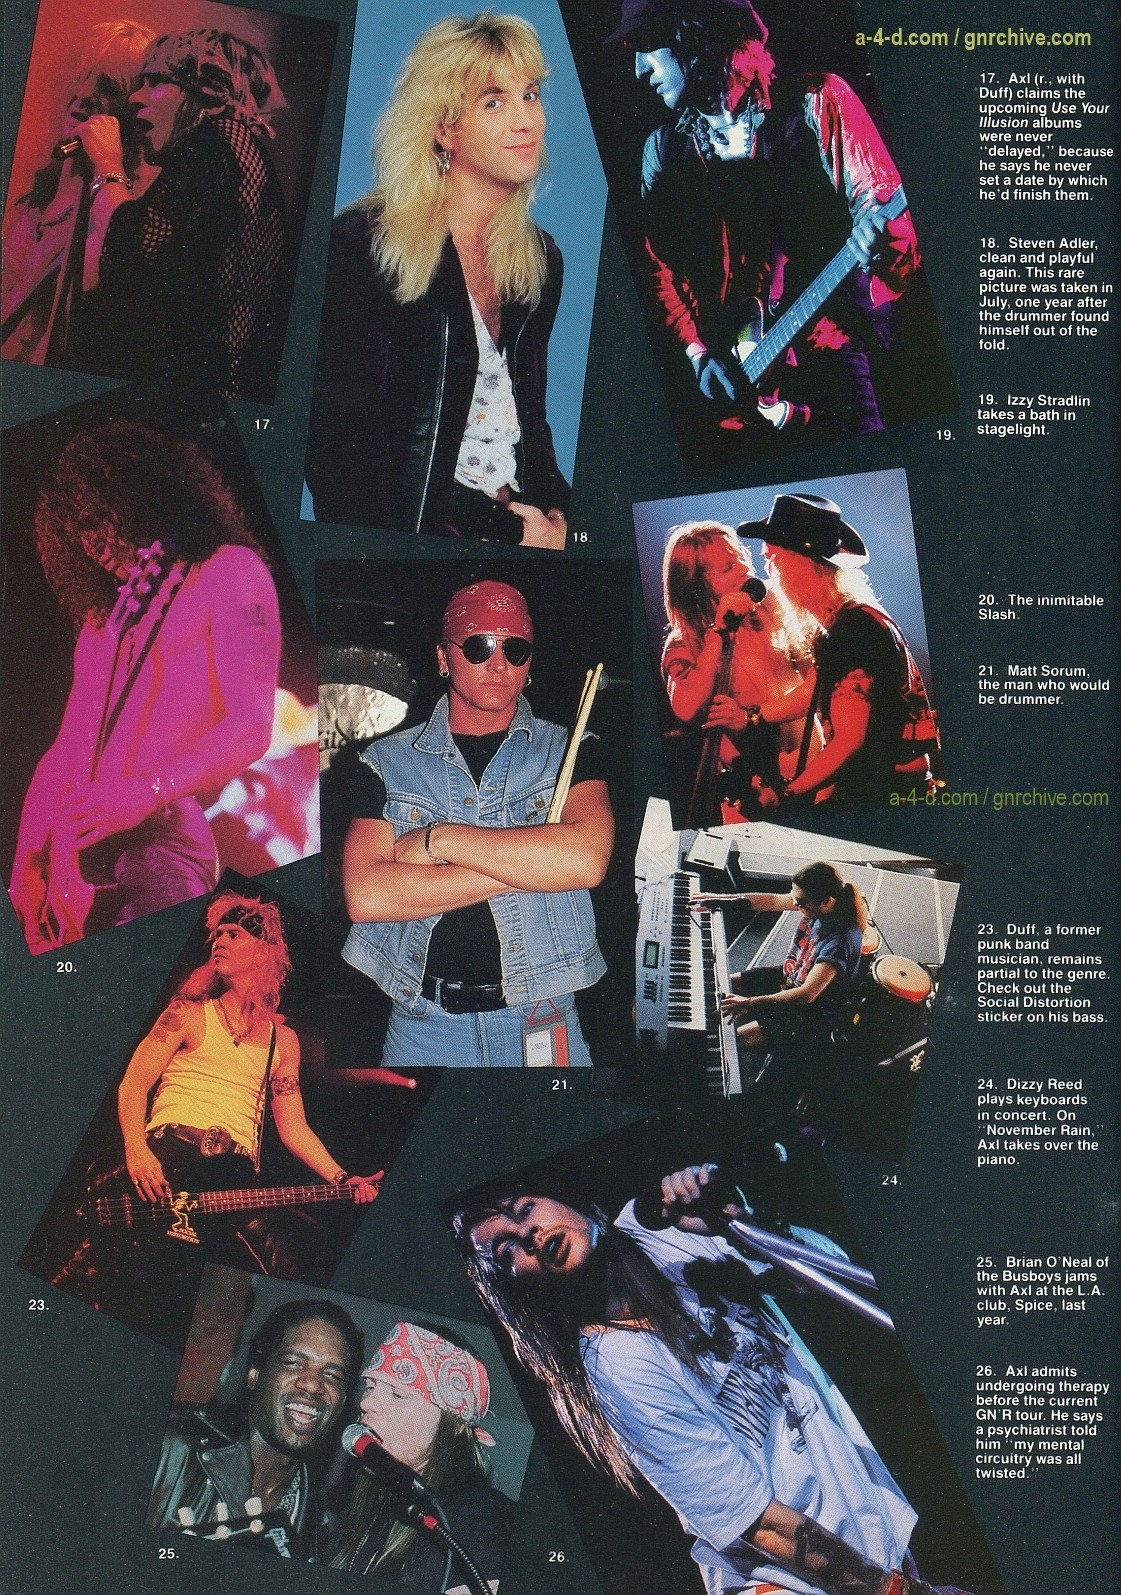 1991.10.31 - Circus - Axl Rose mocked/Fightin' words from Vince Neil 1991-118